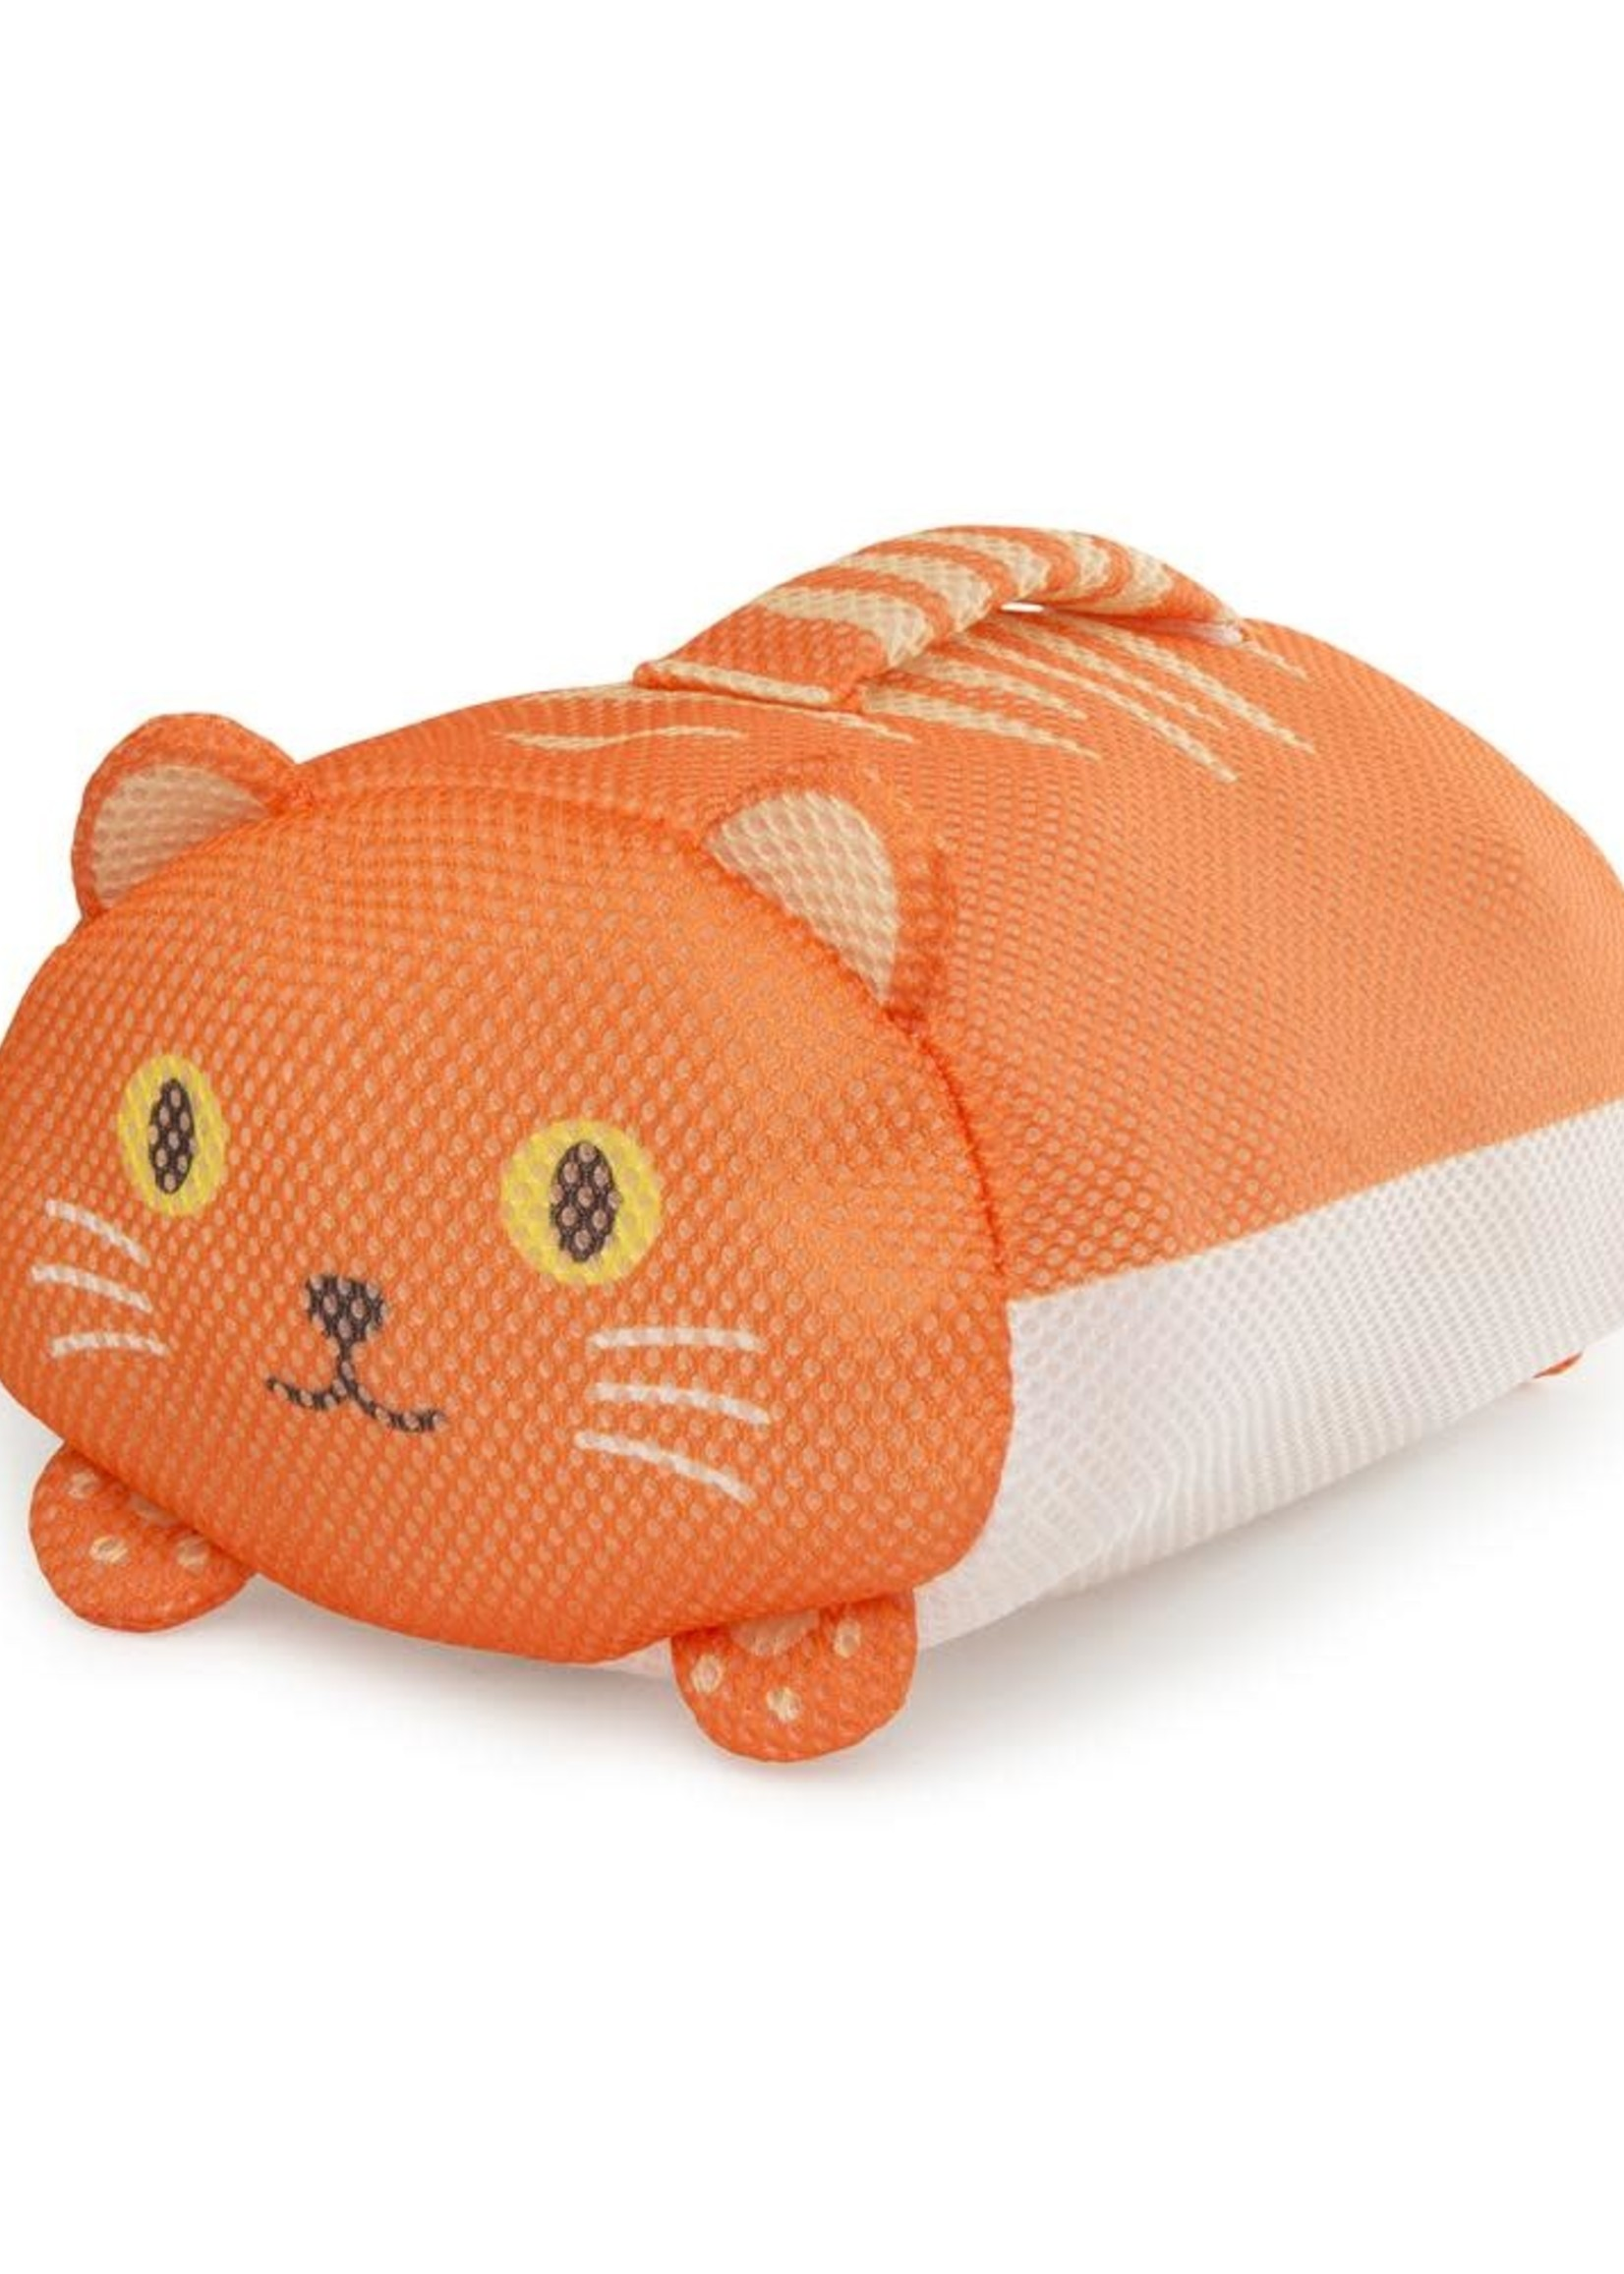 Kikkerland KIKKERLAND CAT LAUNDRY BAG